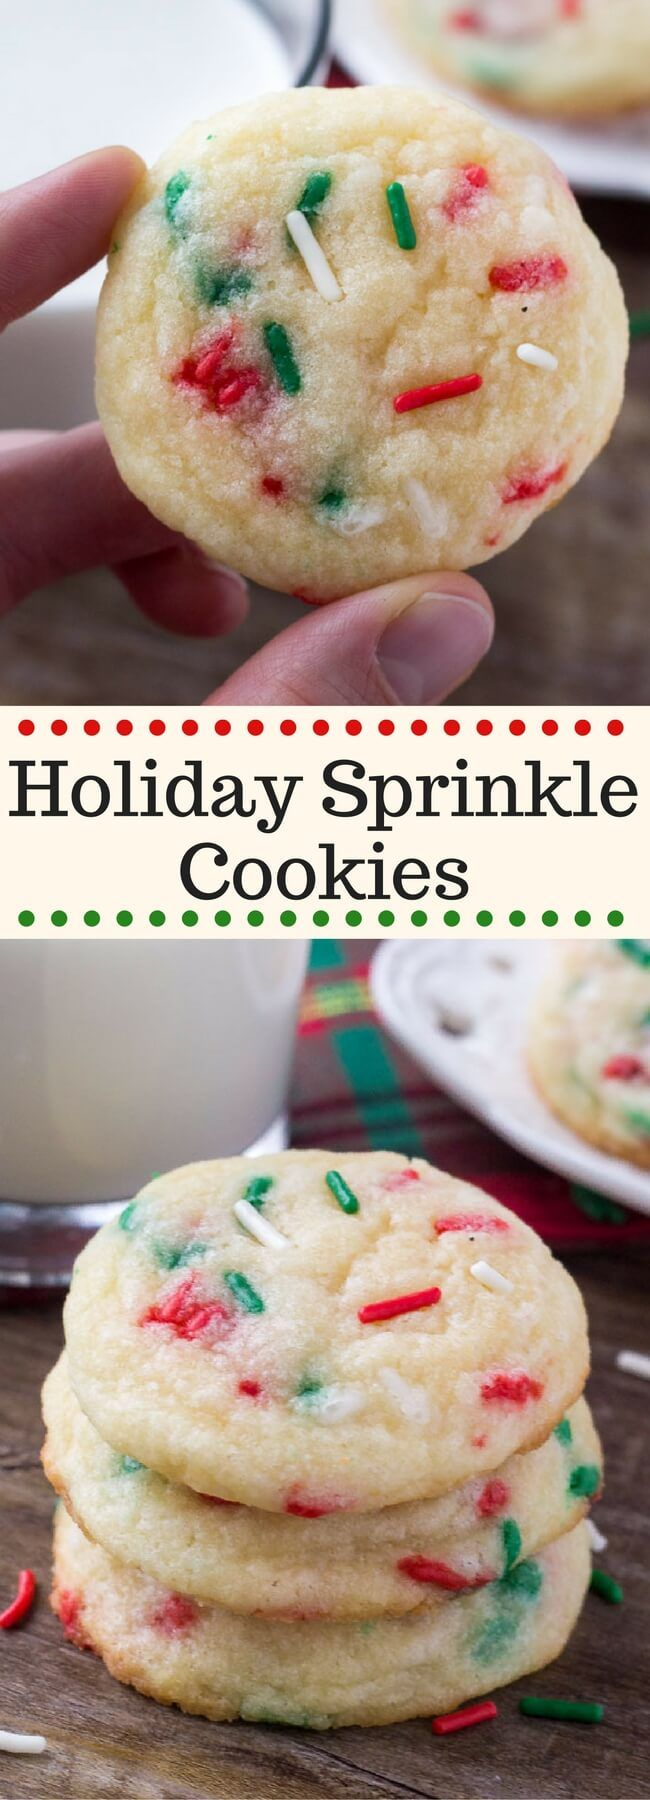 These Holiday Sprinkle Cookies are pillowy soft and melt-in-your mouth. They have a delicious buttery vanilla flavor and are packed with sprinkles. They're the perfect easy cookie recipe for your holiday baking. #sprinklecookies #holidaycookies #christmascookies